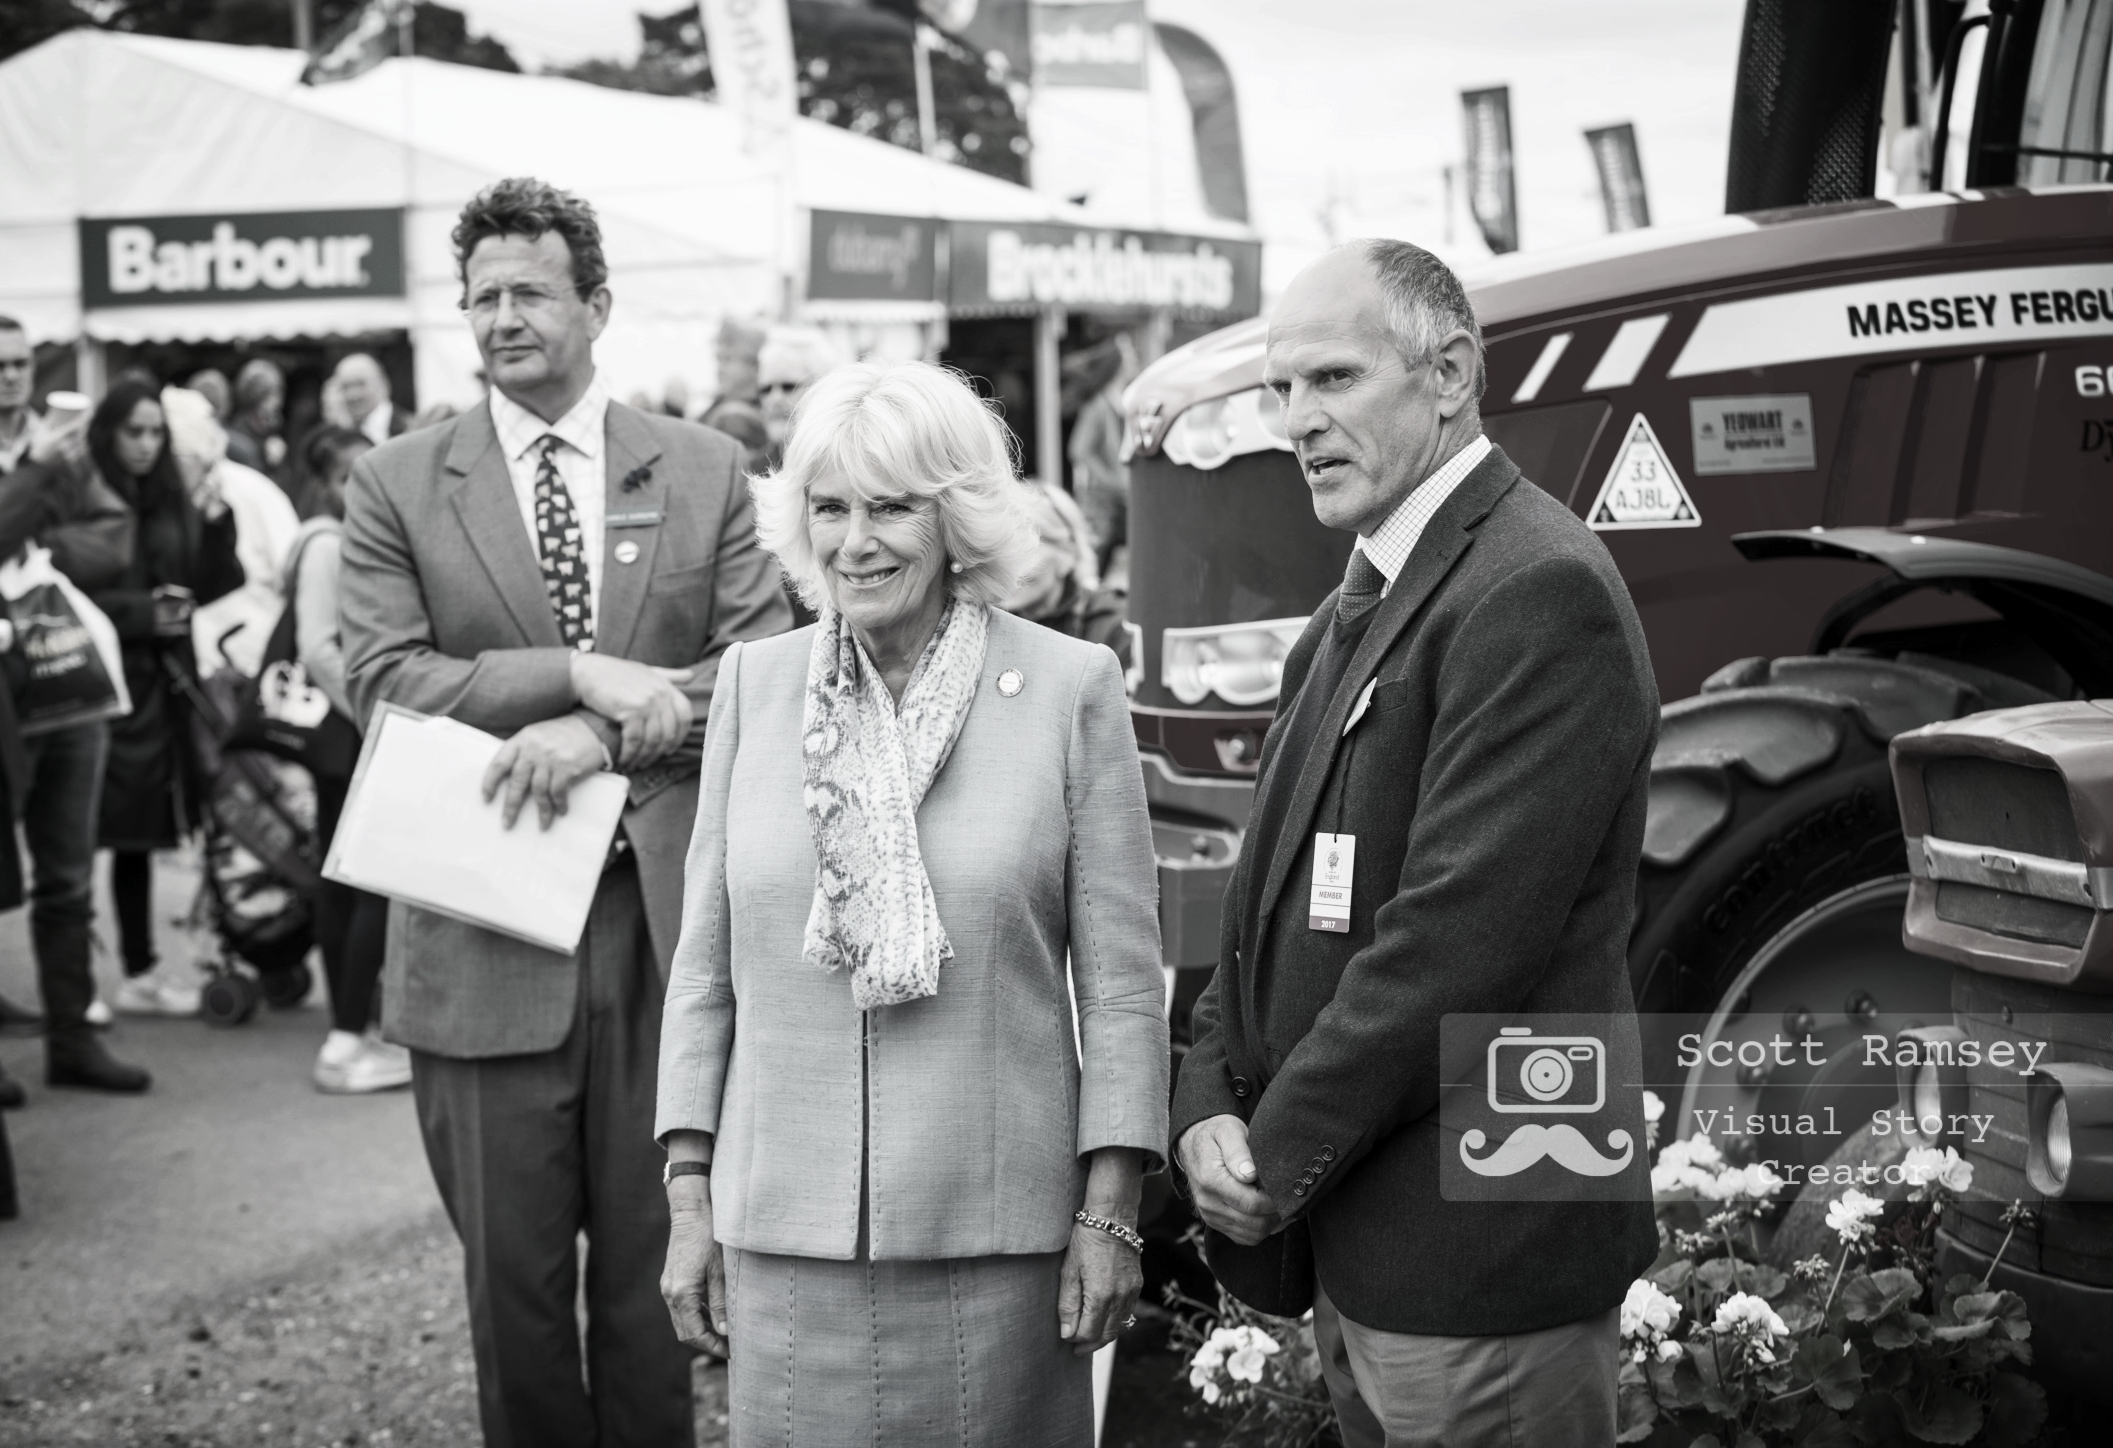 HRH, The Duchess Of Cornwall poses for a photograph during her visit to the 2017 South Of England Show. Photo © Scott Ramsey.